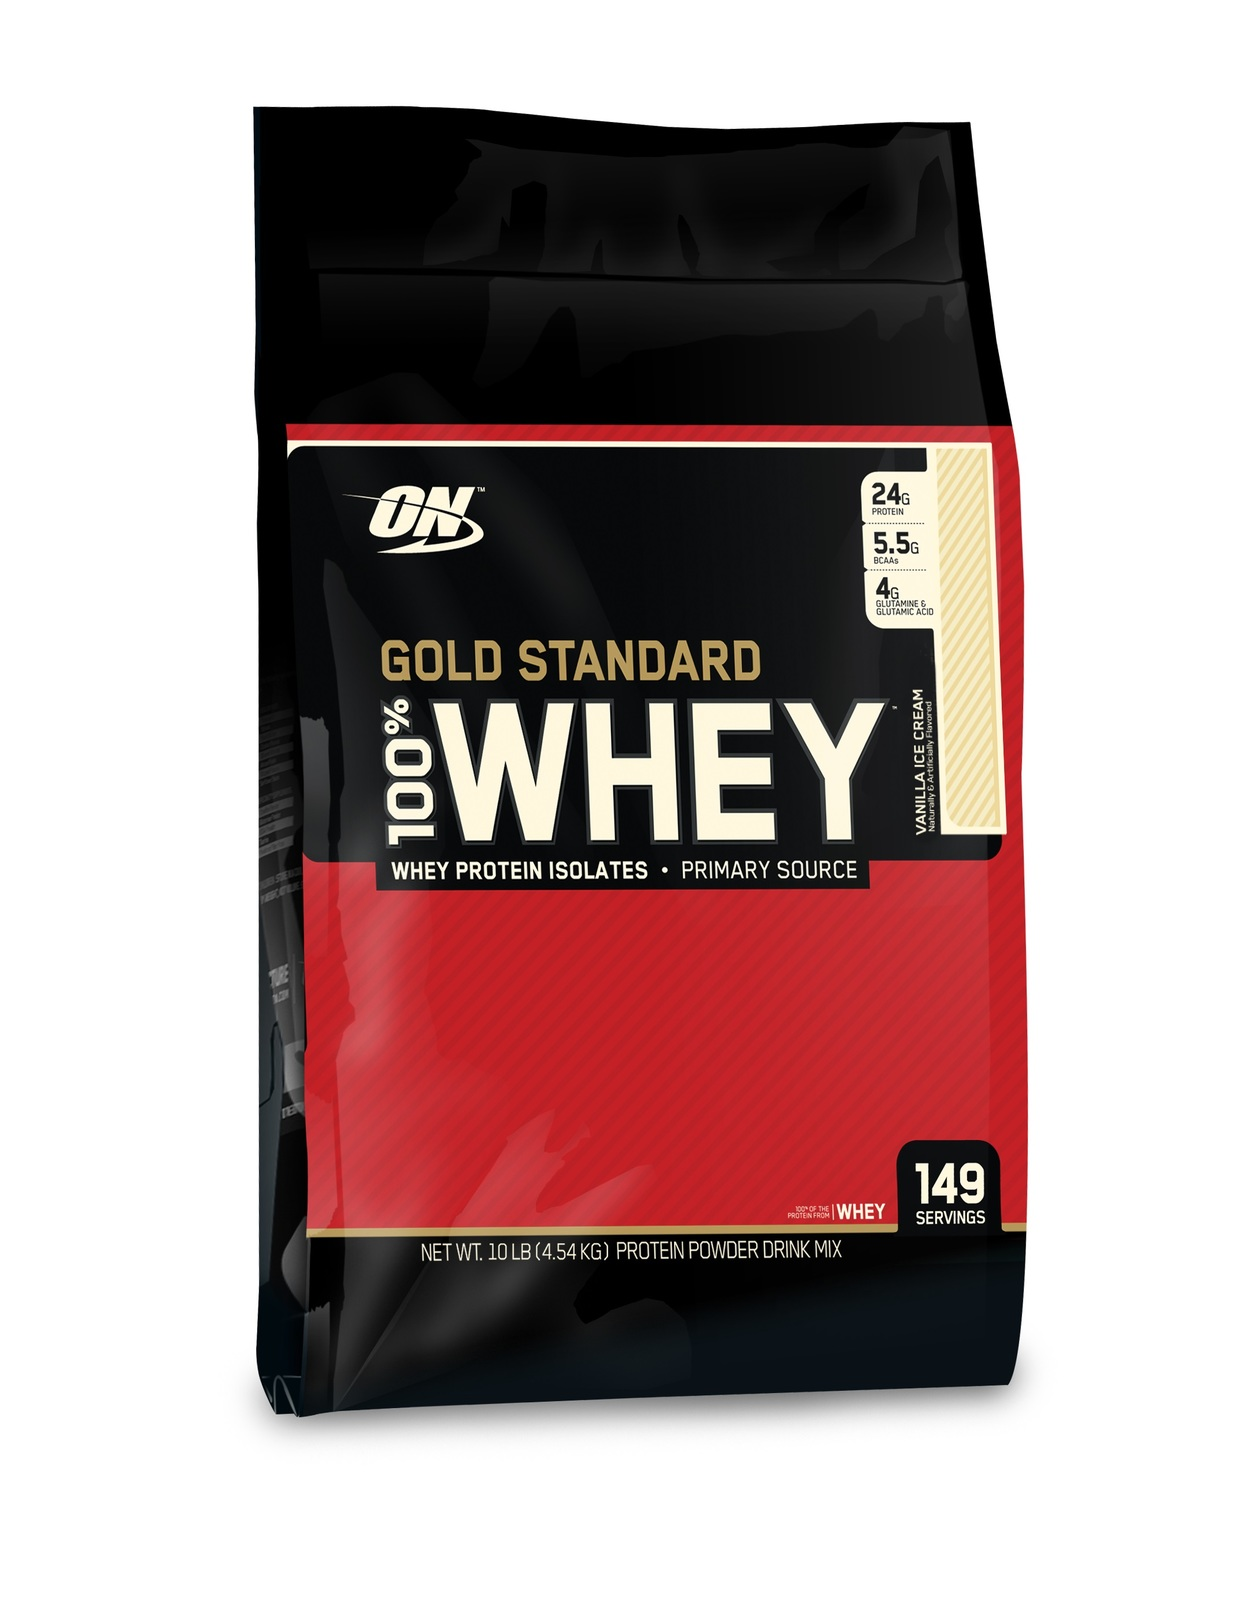 Optimum Nutrition Gold Standard 100% Whey - Vanilla Ice Cream (4.55kg) image